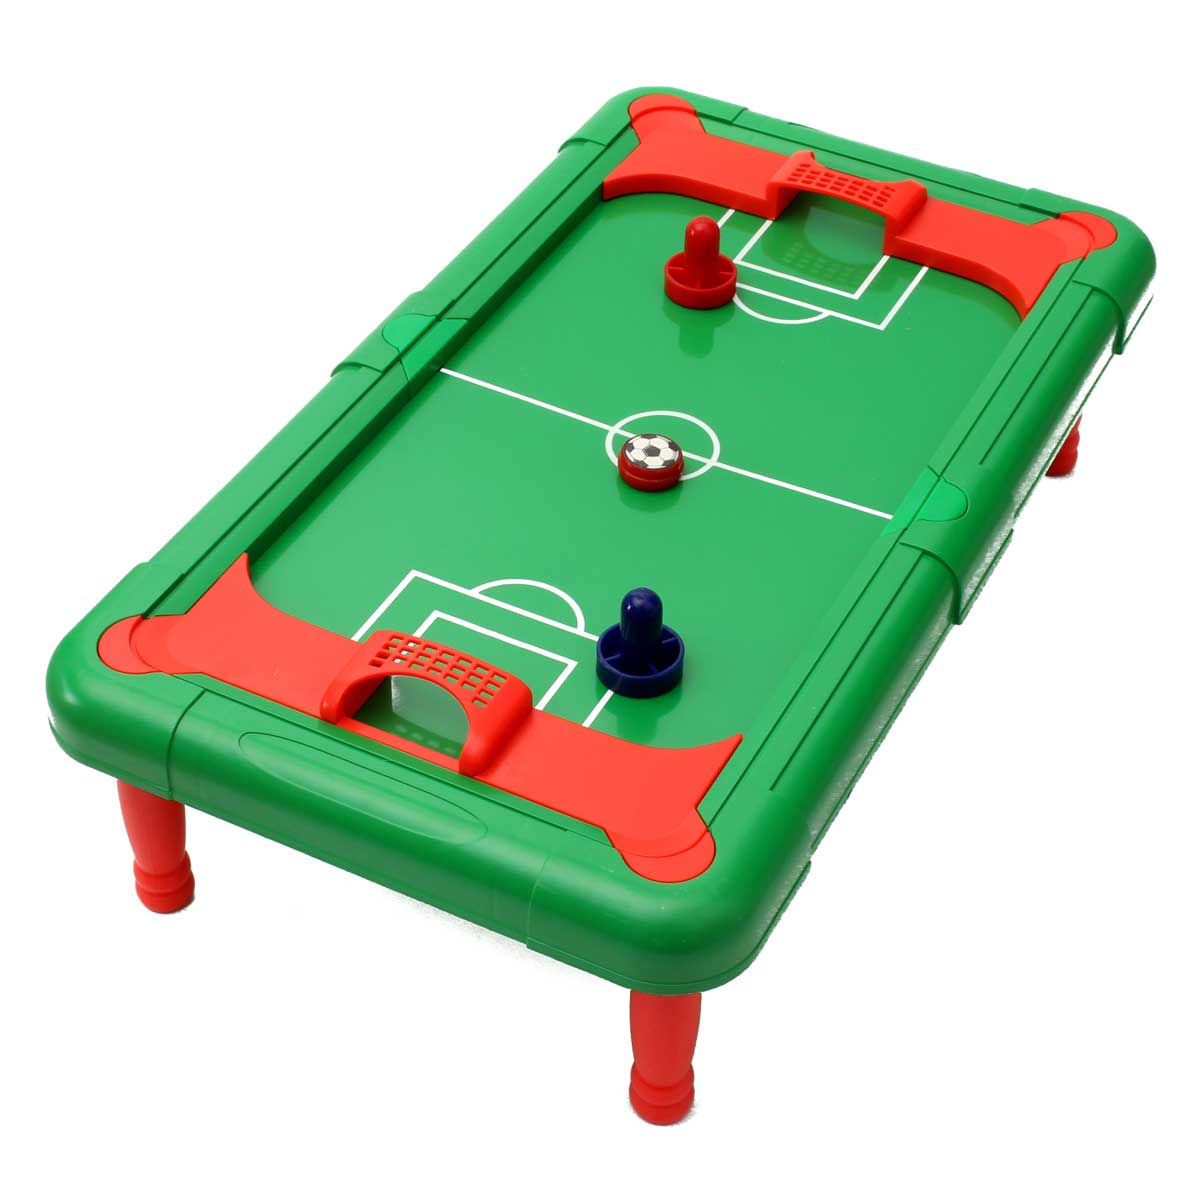 New Desktop Football Game With 10 Soccercards for 2 Players Tabletop Shoot Children Table Soccer Toys Kids Toy 43*24.5*12CM(China (Mainland))